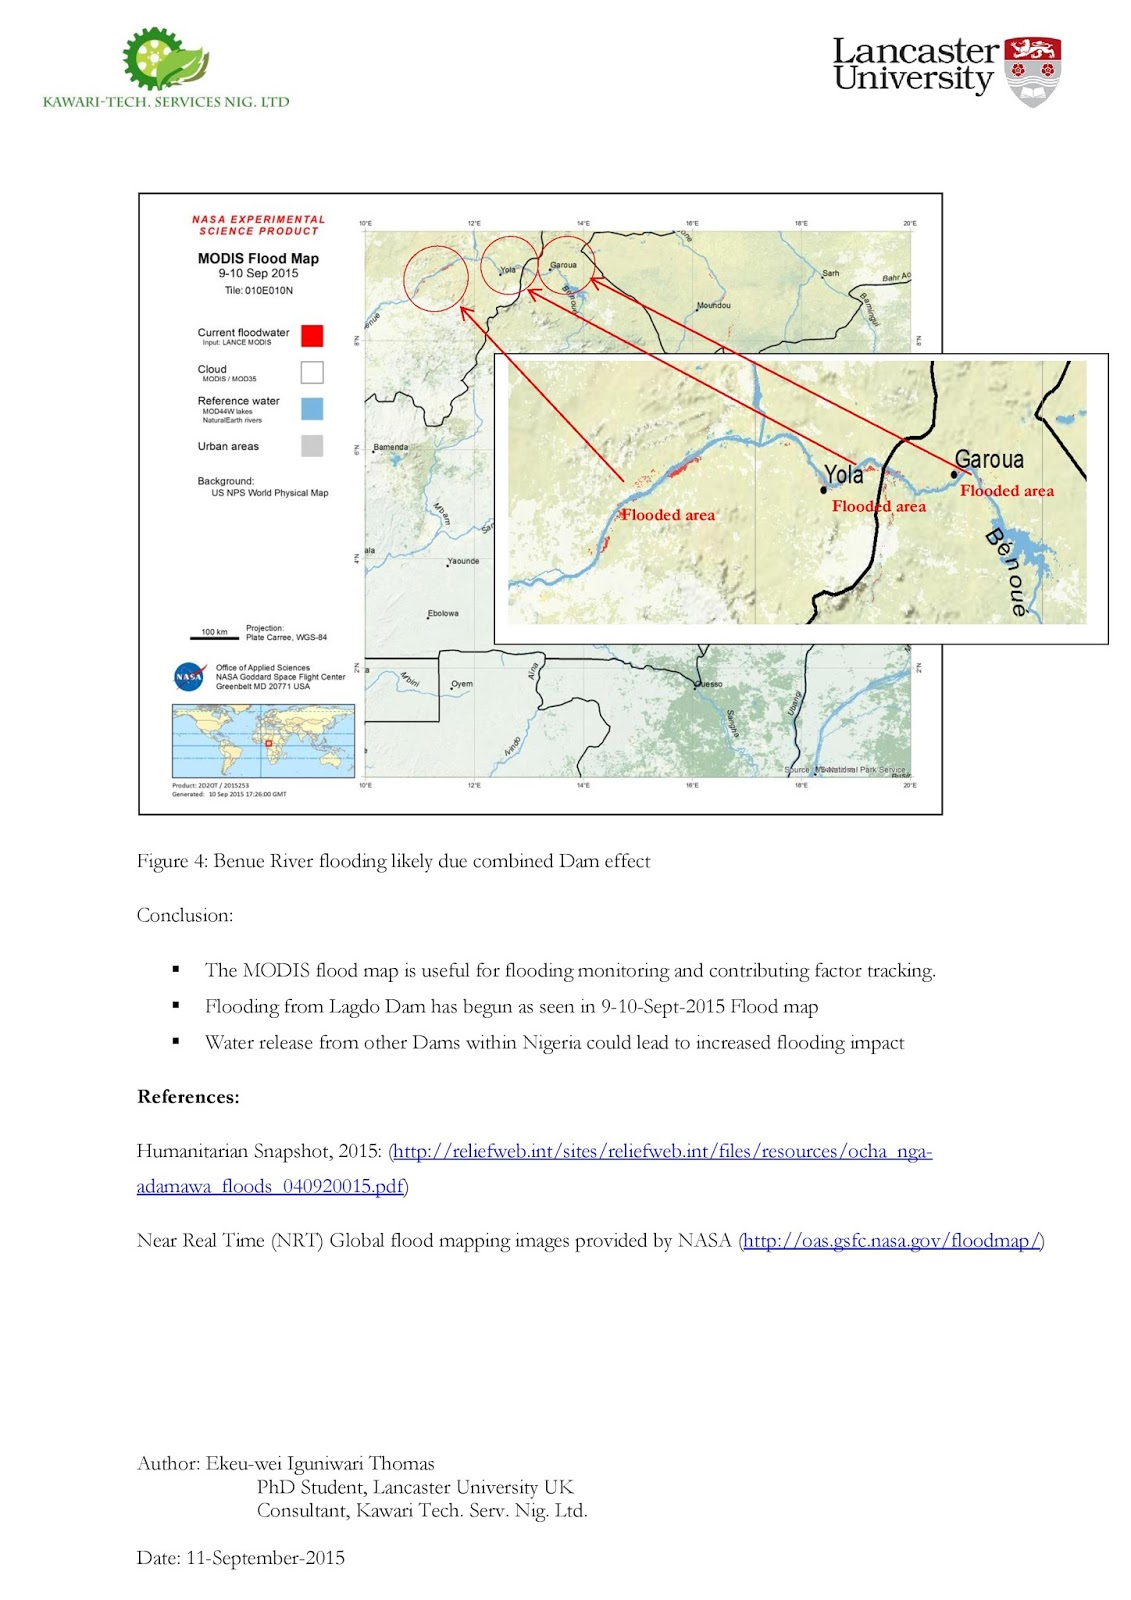 flood map the essence of this bulletin is to track flooding and consequences during this flooding season in nigeria and enable emergency response